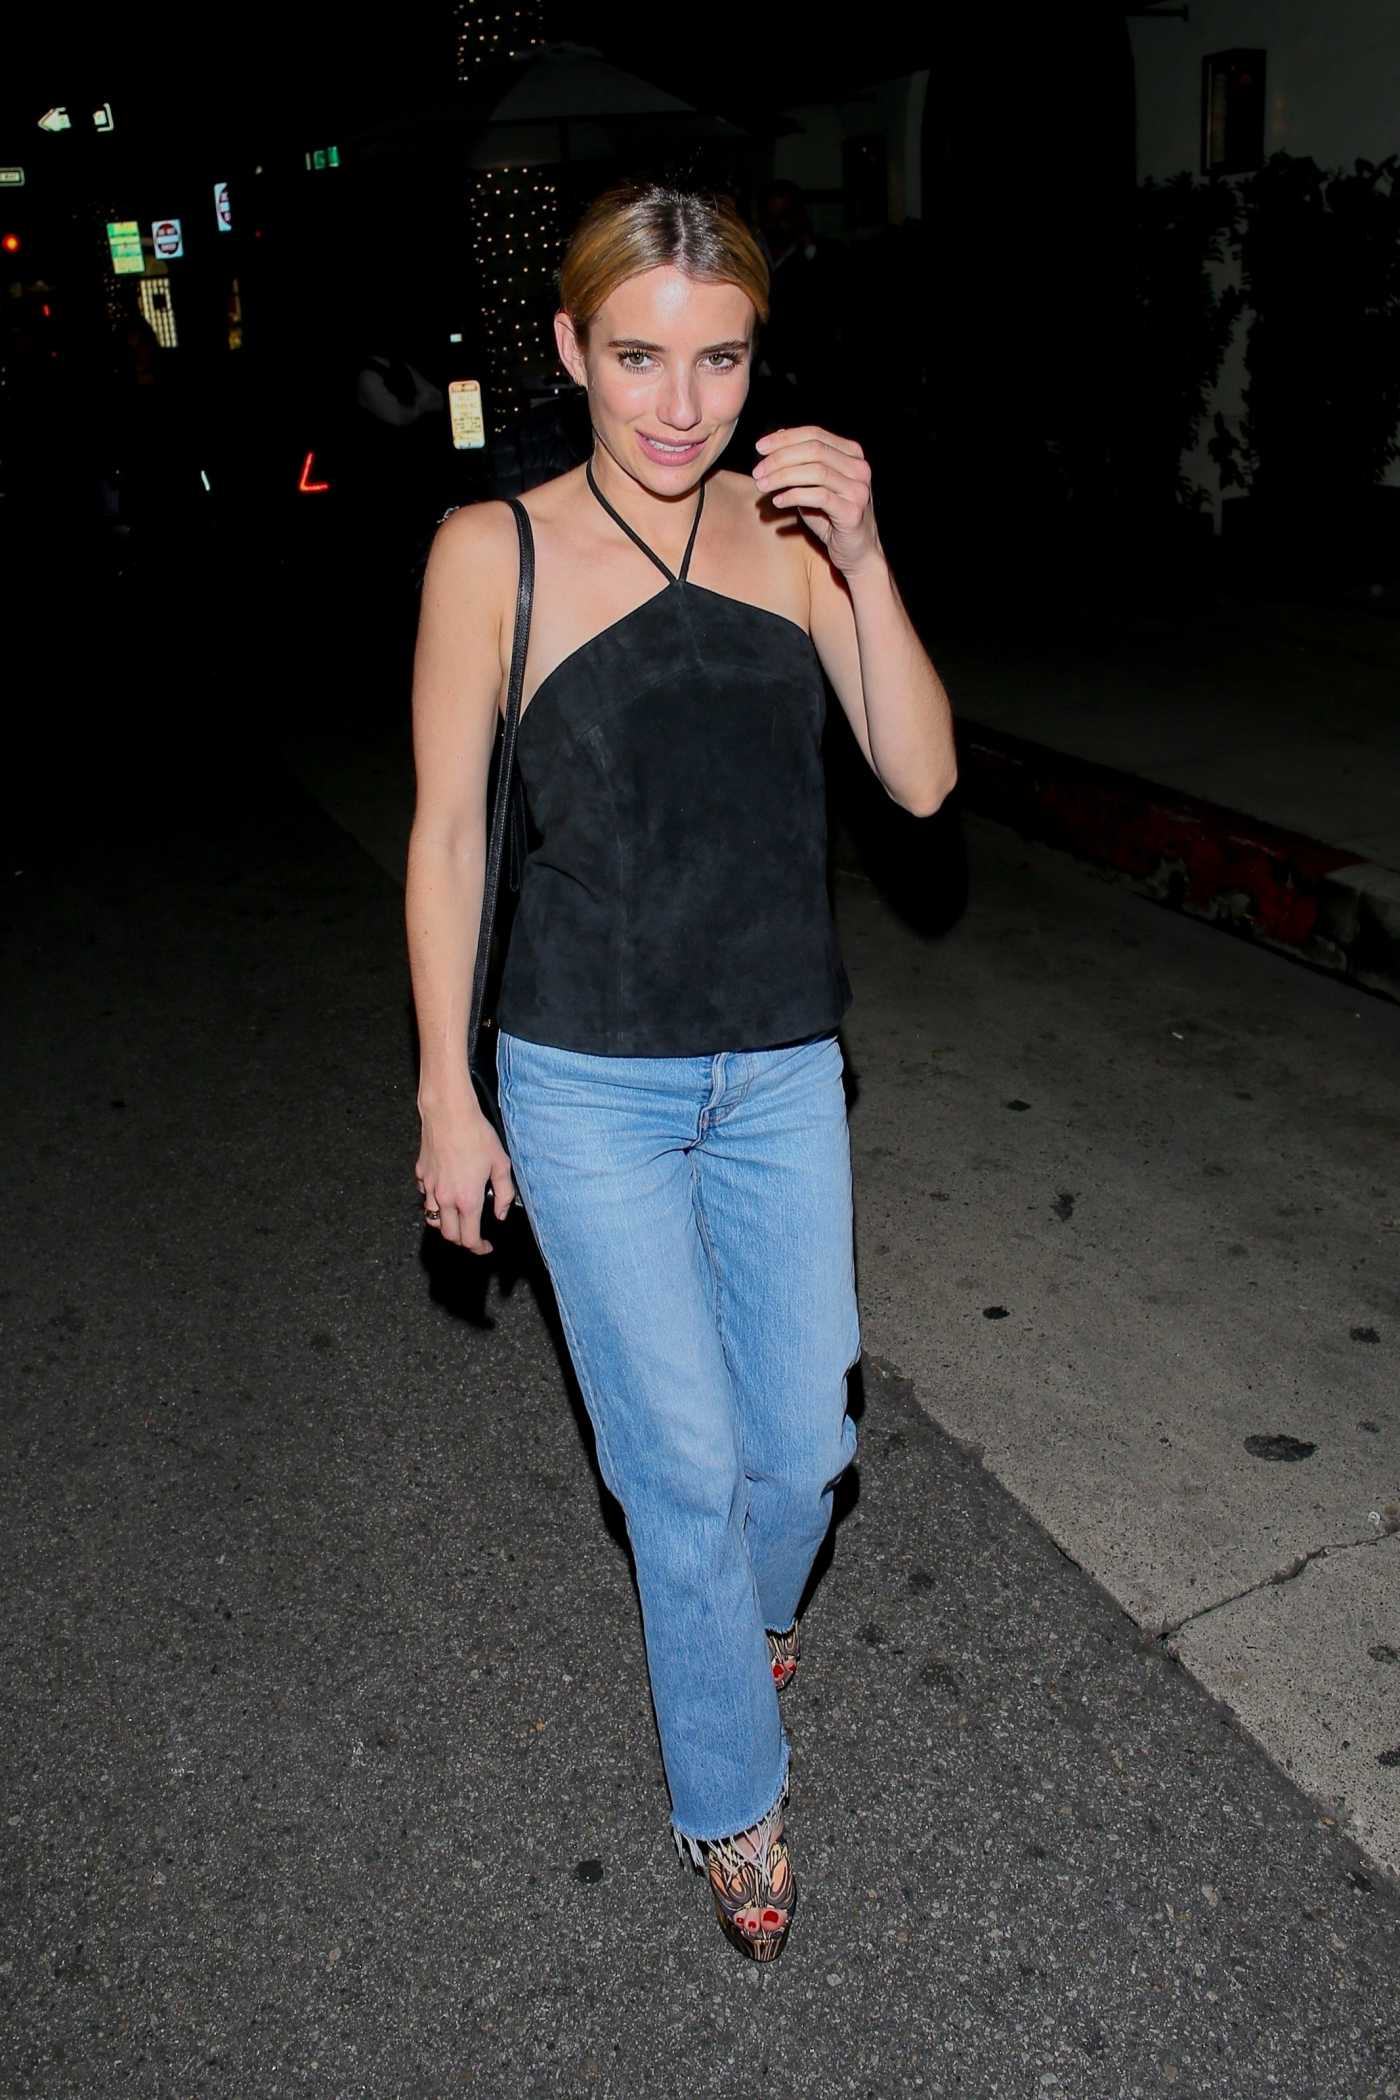 Emma Roberts in a Black Blouse Leaves Madeo Restaurant in Beverly Hills 01/31/2020